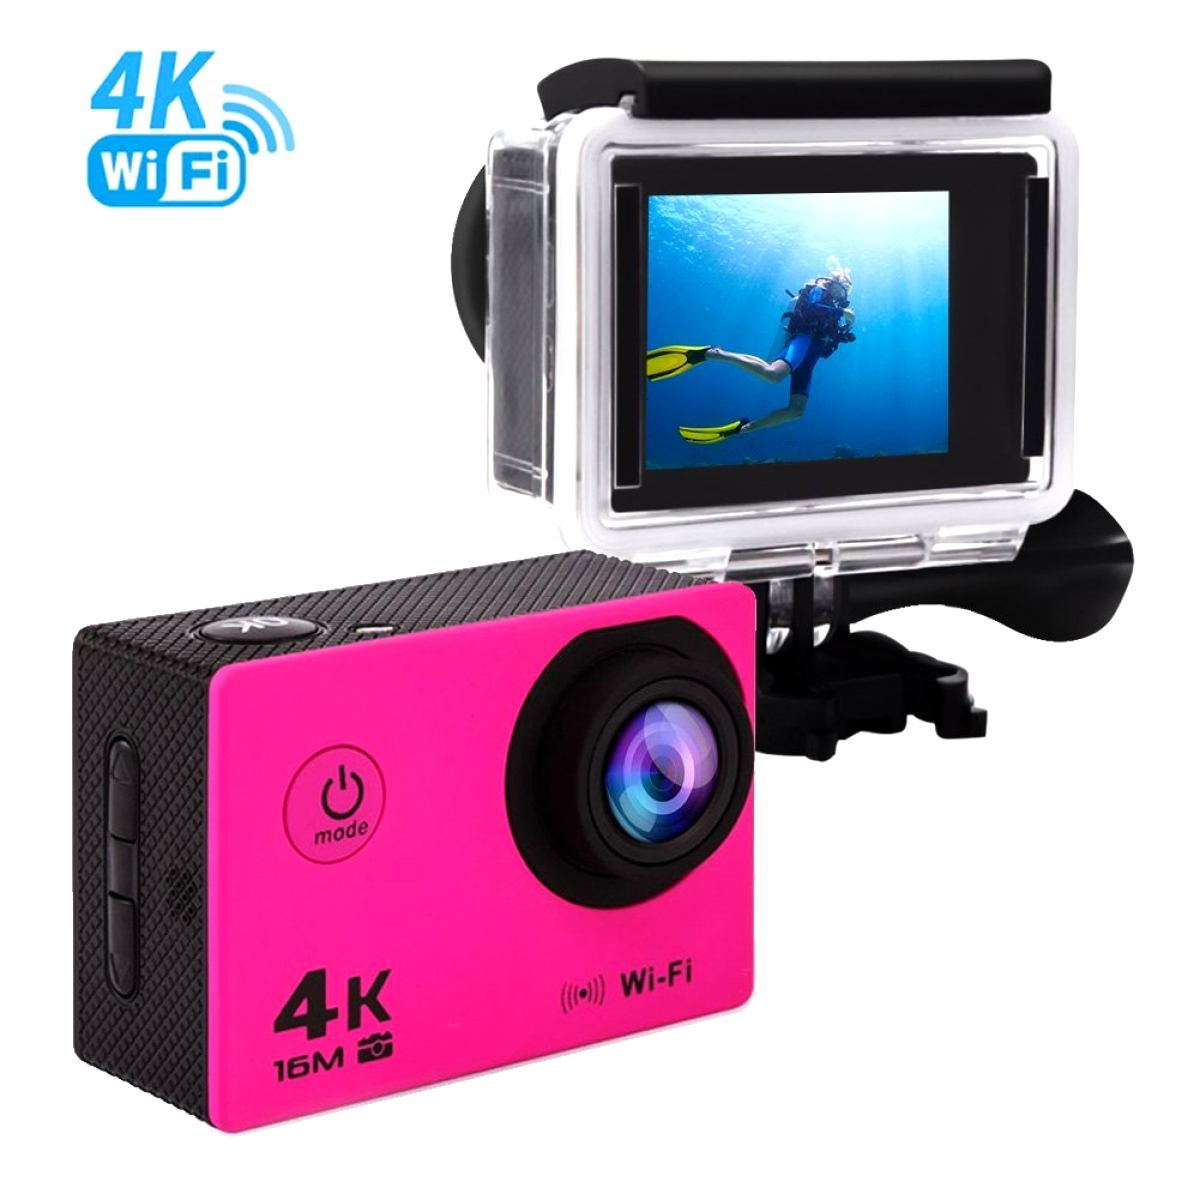 Camera Waterproof Action Cameras Video Underwater WiFi HD 1080P 4K Pink w/ accs Featured